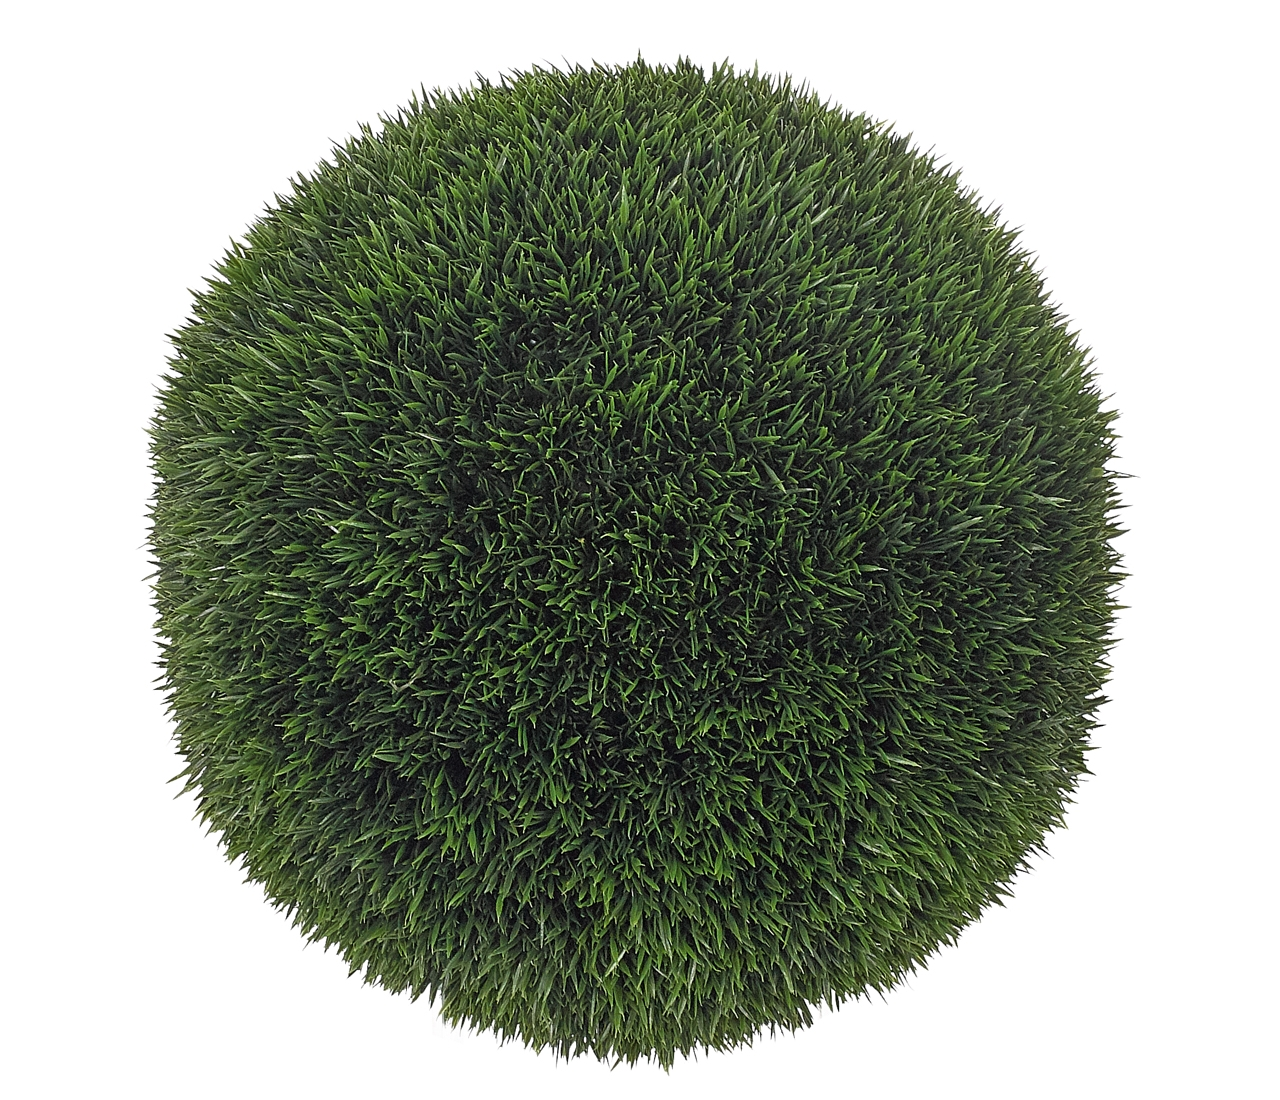 UV rated and suitable for outdoor use! | Grass Ball 14""